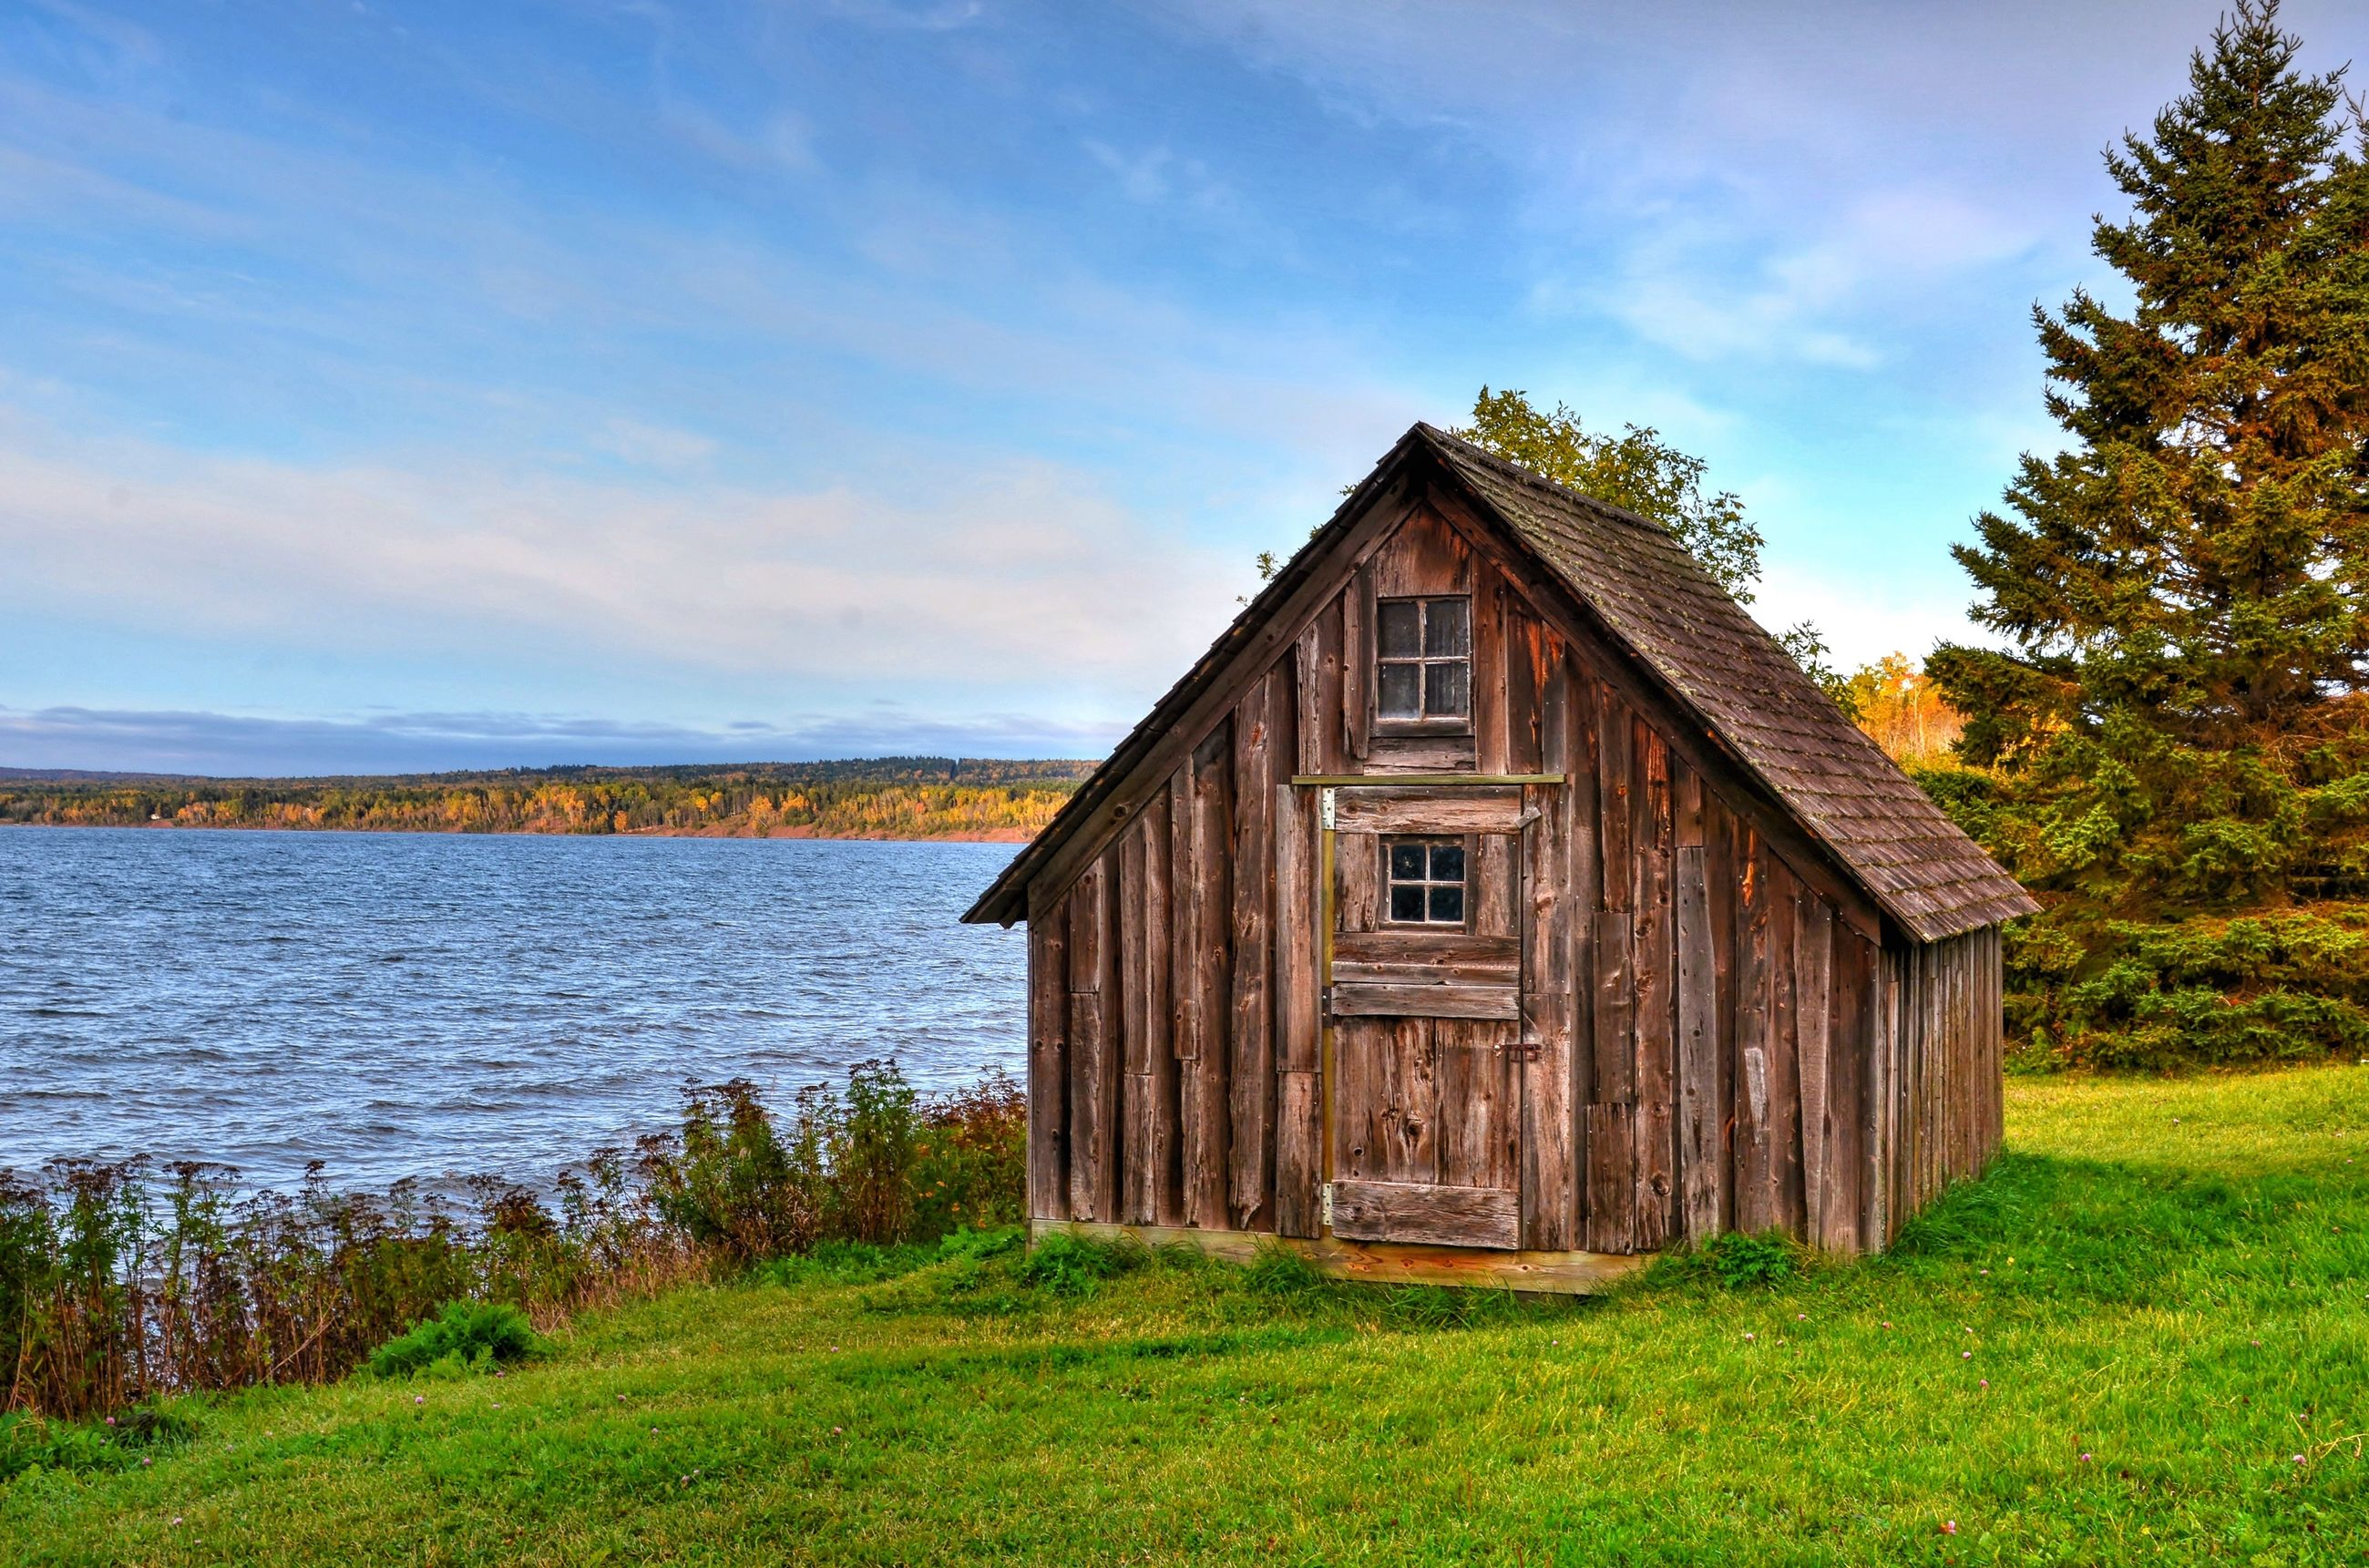 sky, built structure, architecture, house, building exterior, tranquility, rural scene, outdoors, cottage, tree, wood - material, no people, grass, day, green color, tranquil scene, nature, cabin, beauty in nature, water